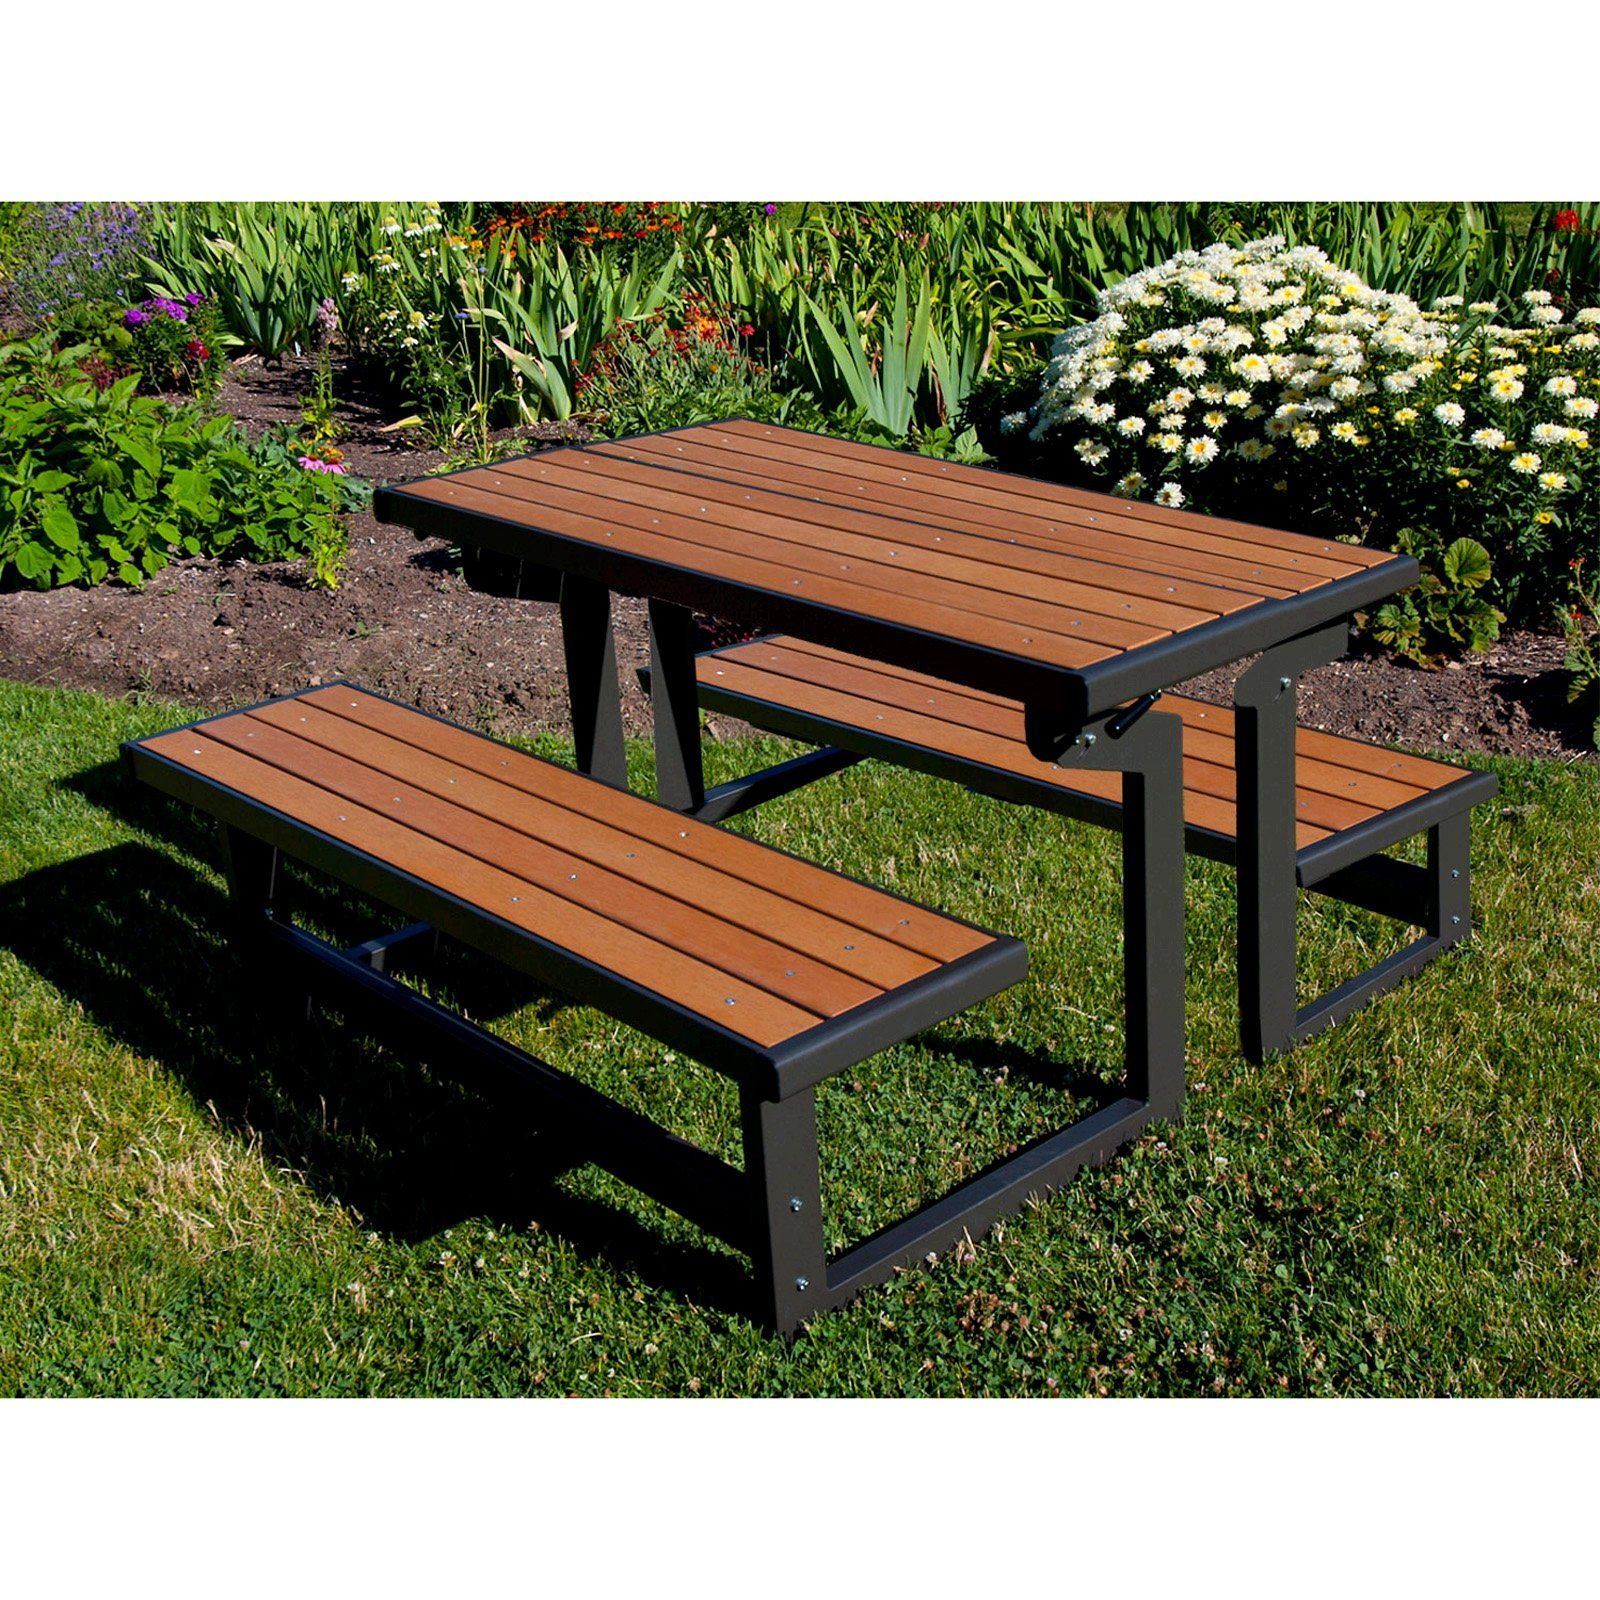 Have To Have It Lifetime Products Wood Grain Convertible Folding Picnic Table 499 98 Hayneedle Com Folding Picnic Table Lifetime Tables Picnic Table